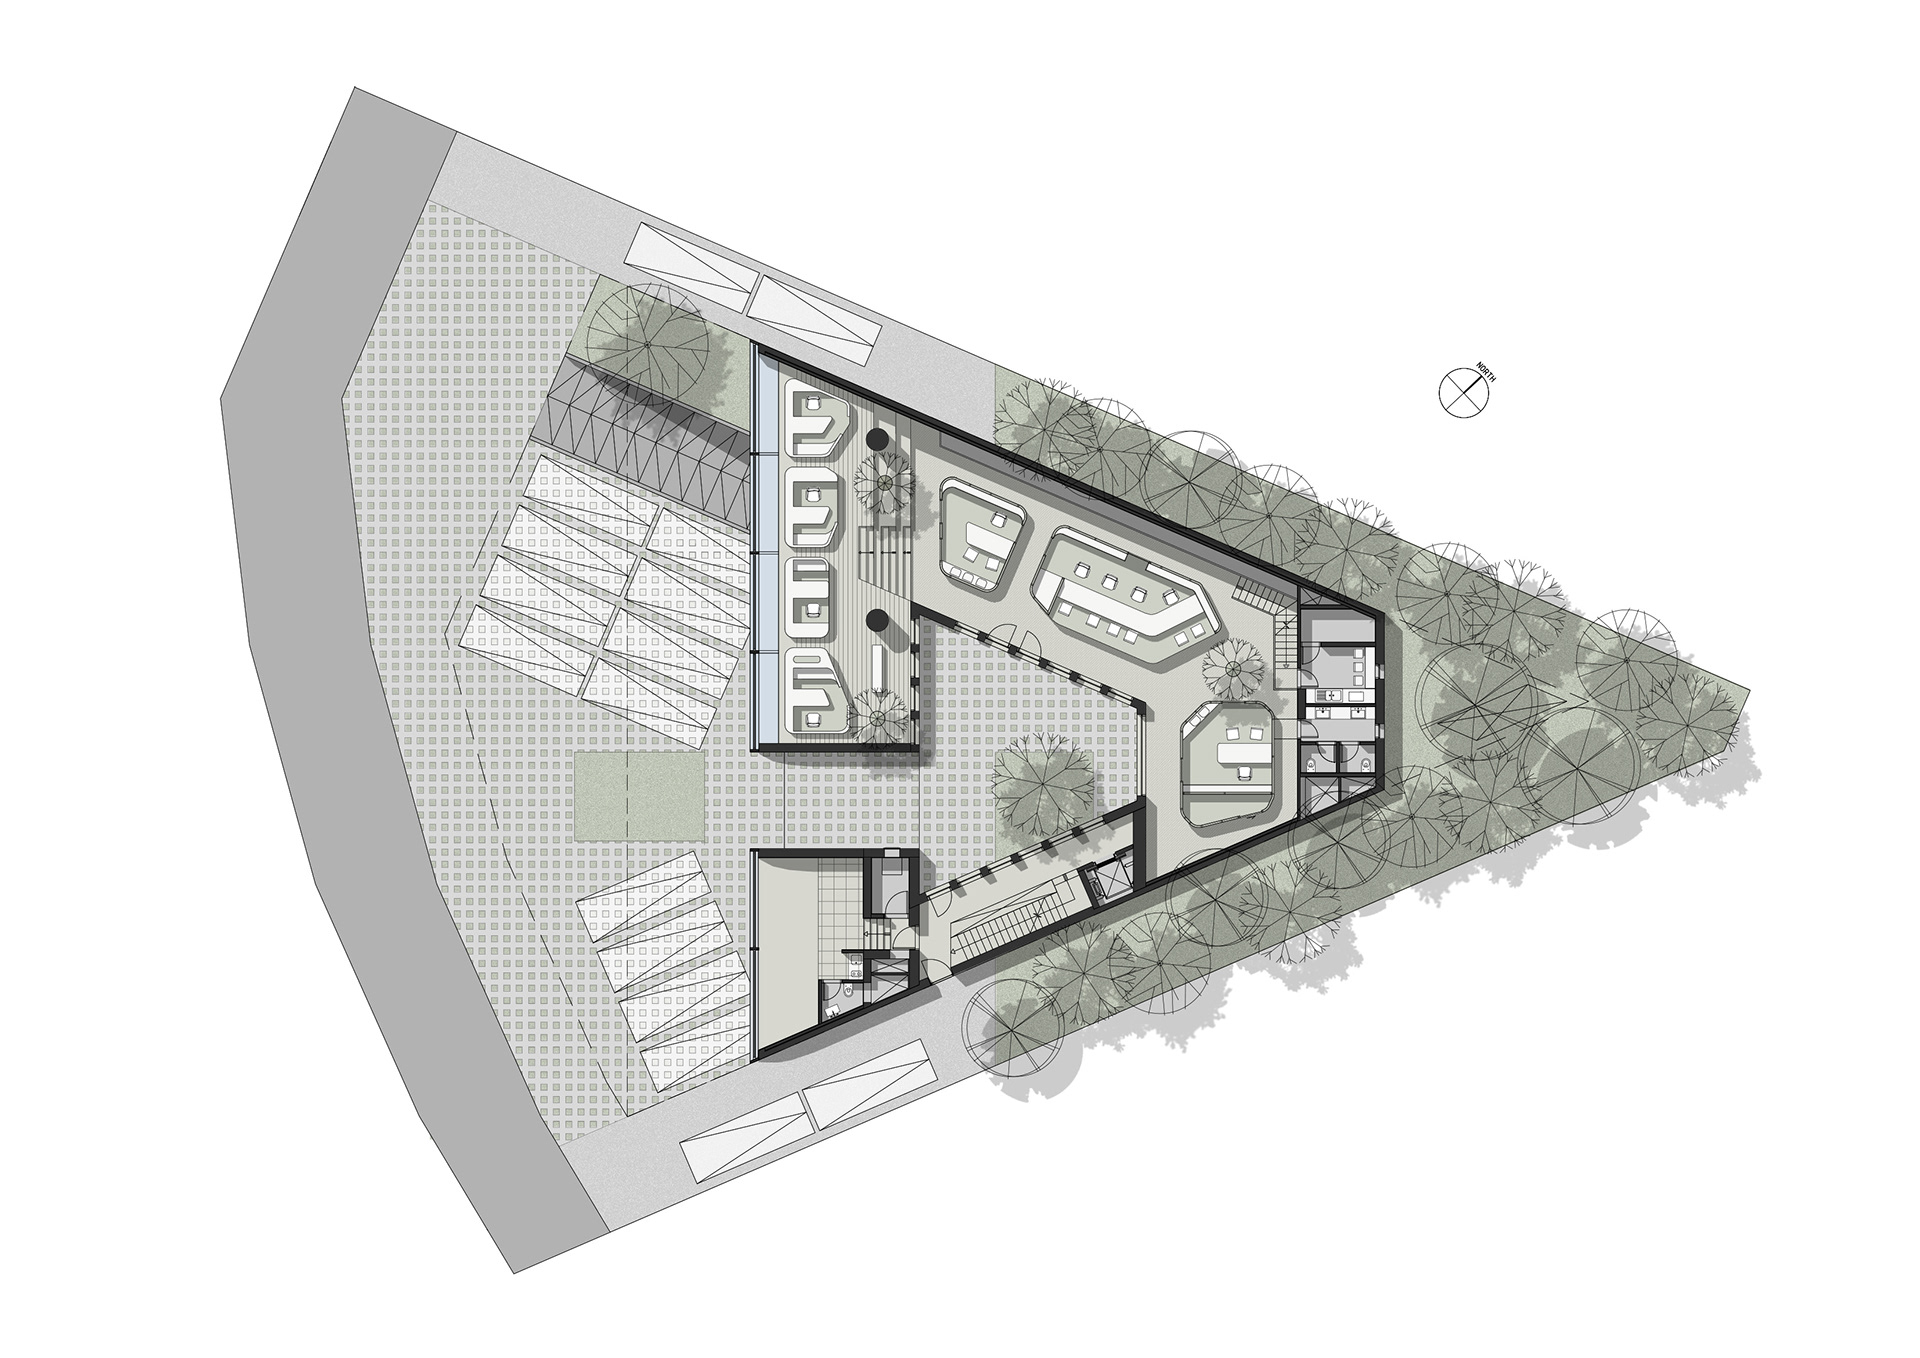 Photo House Of Representatives Floor Plan Images